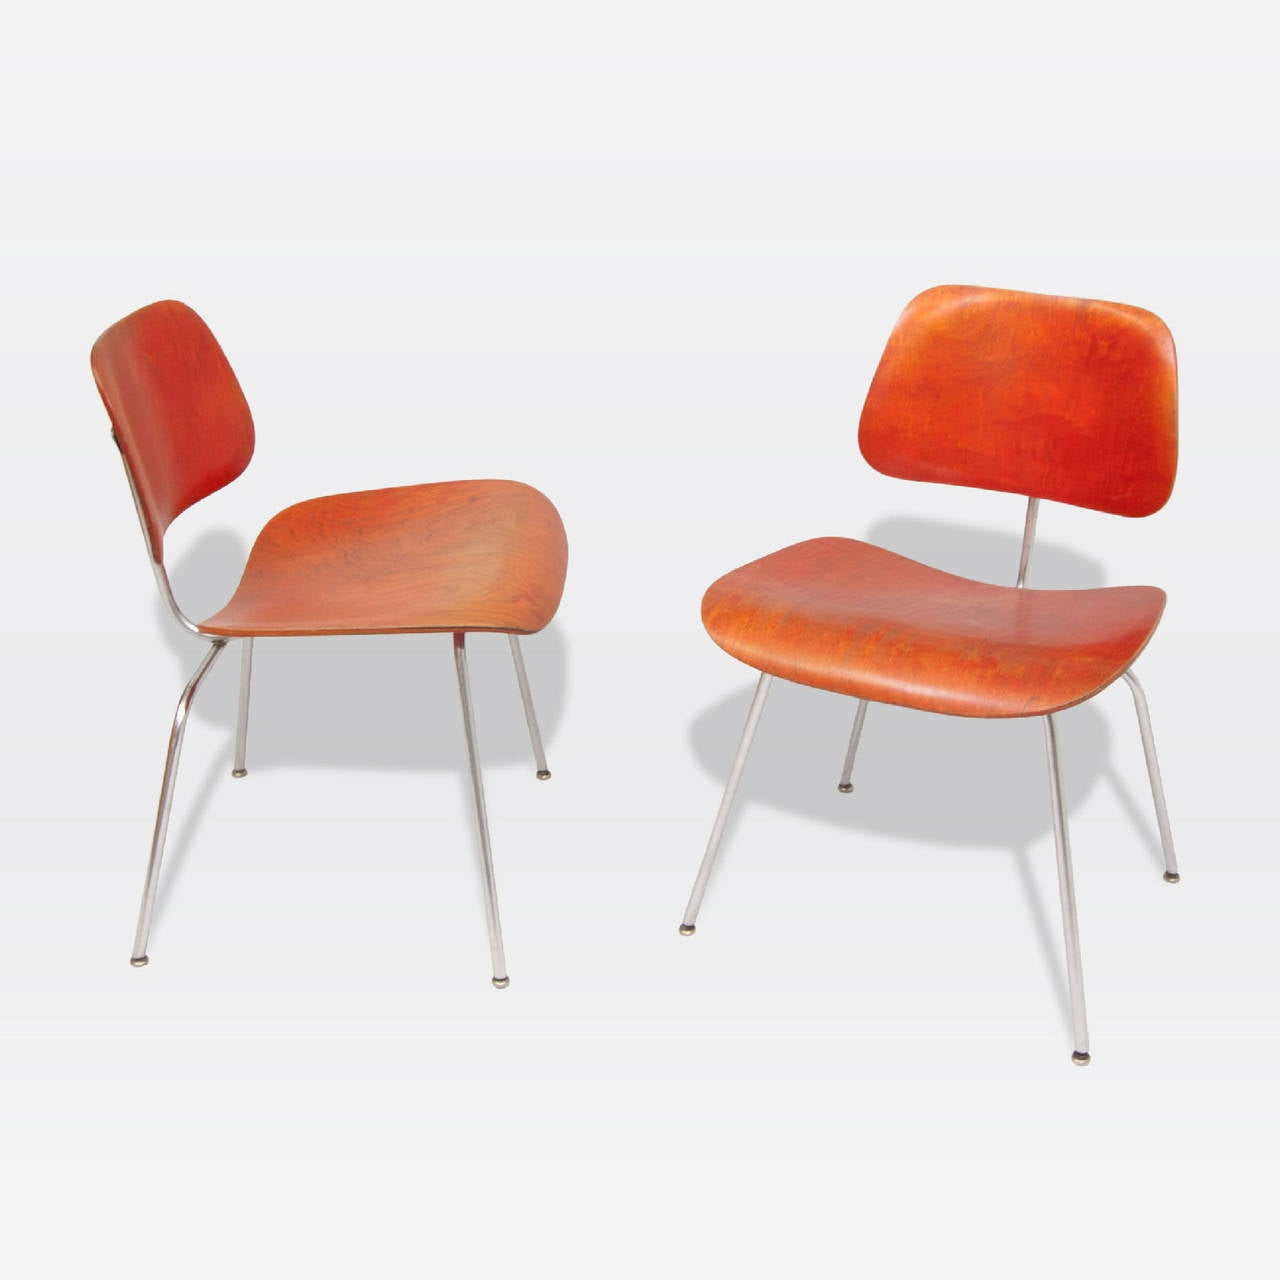 Pair of rare aniline dyed red ash DCM chairs with satin chrome frame. Designed by Ray & Charles Eames for Herman Miller.